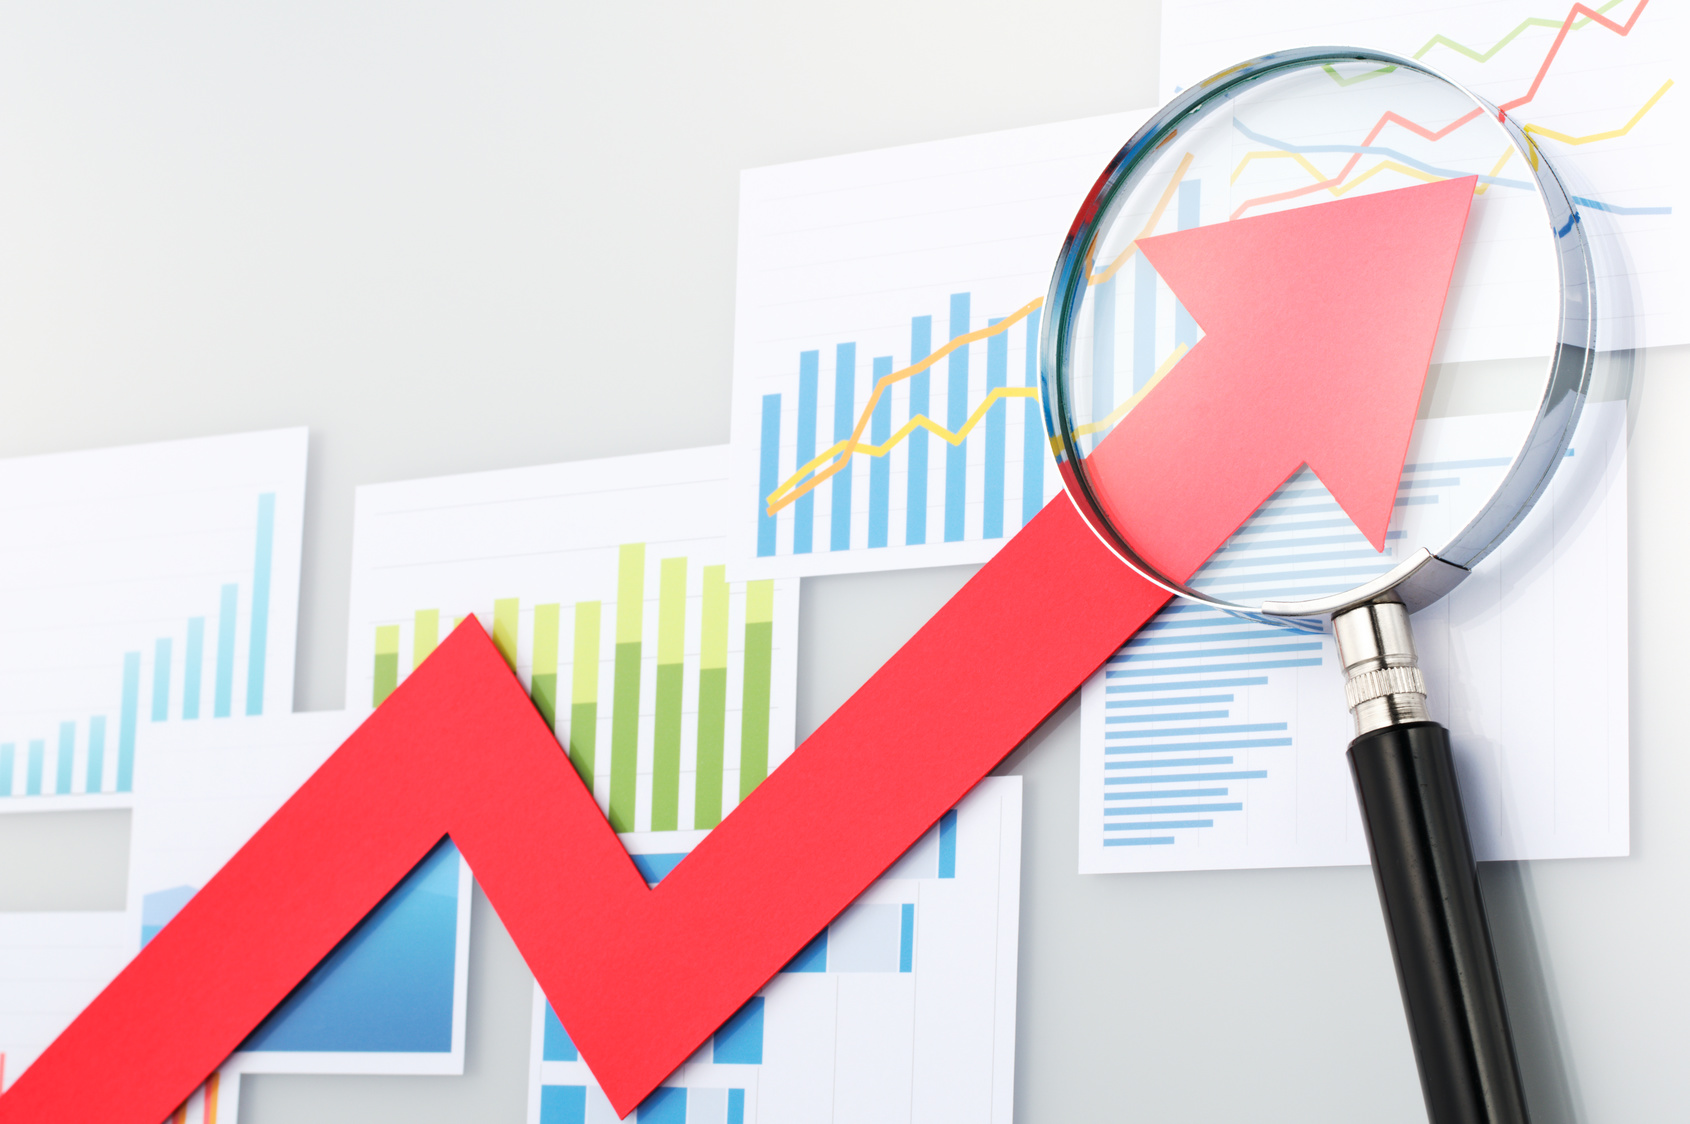 Red arrow and magnifying glass on the background of graphs and charts.